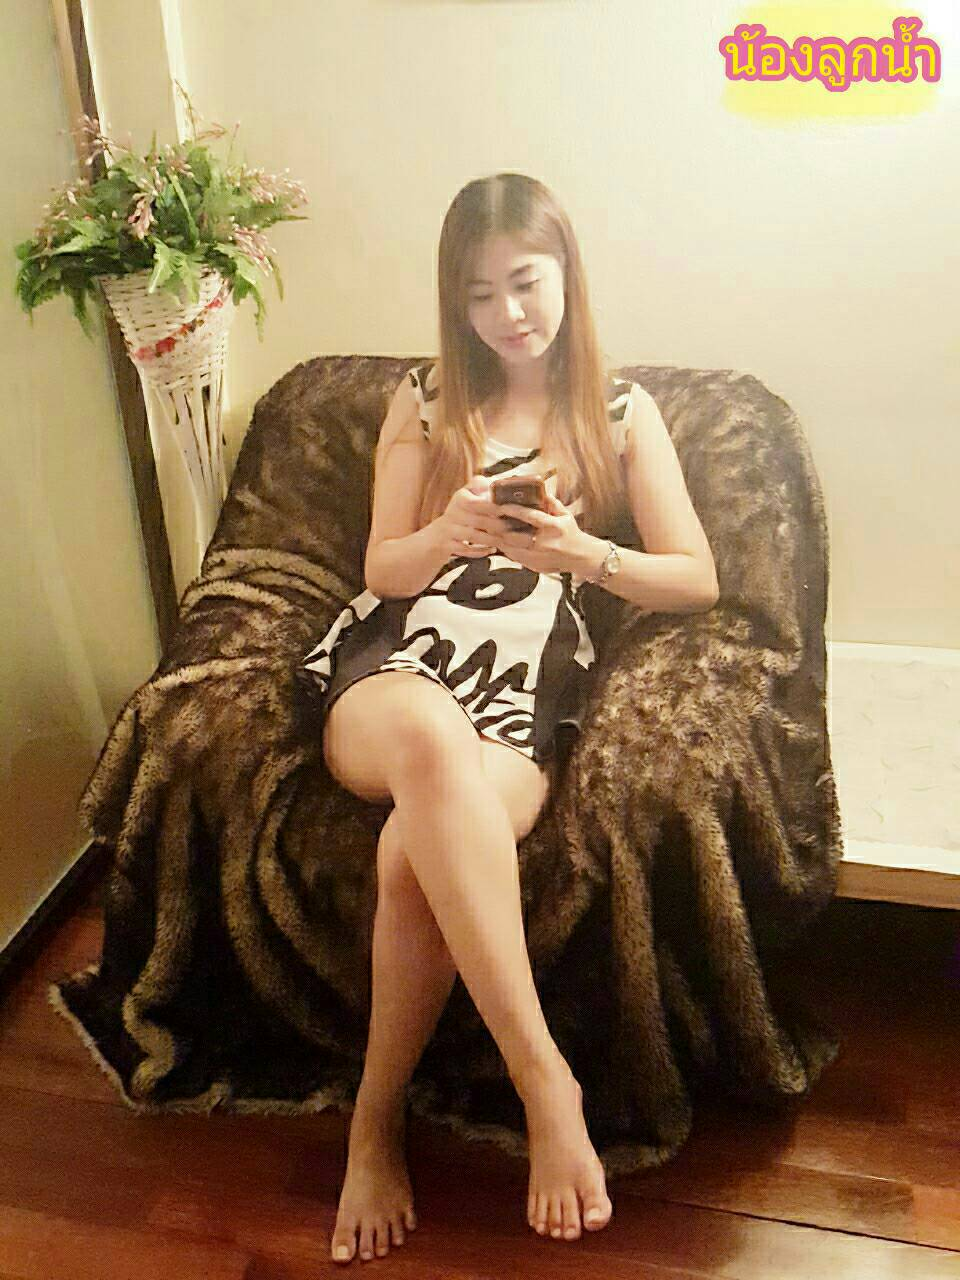 Fang VIP Club Chiang Mai - massage by sexy Thai girls